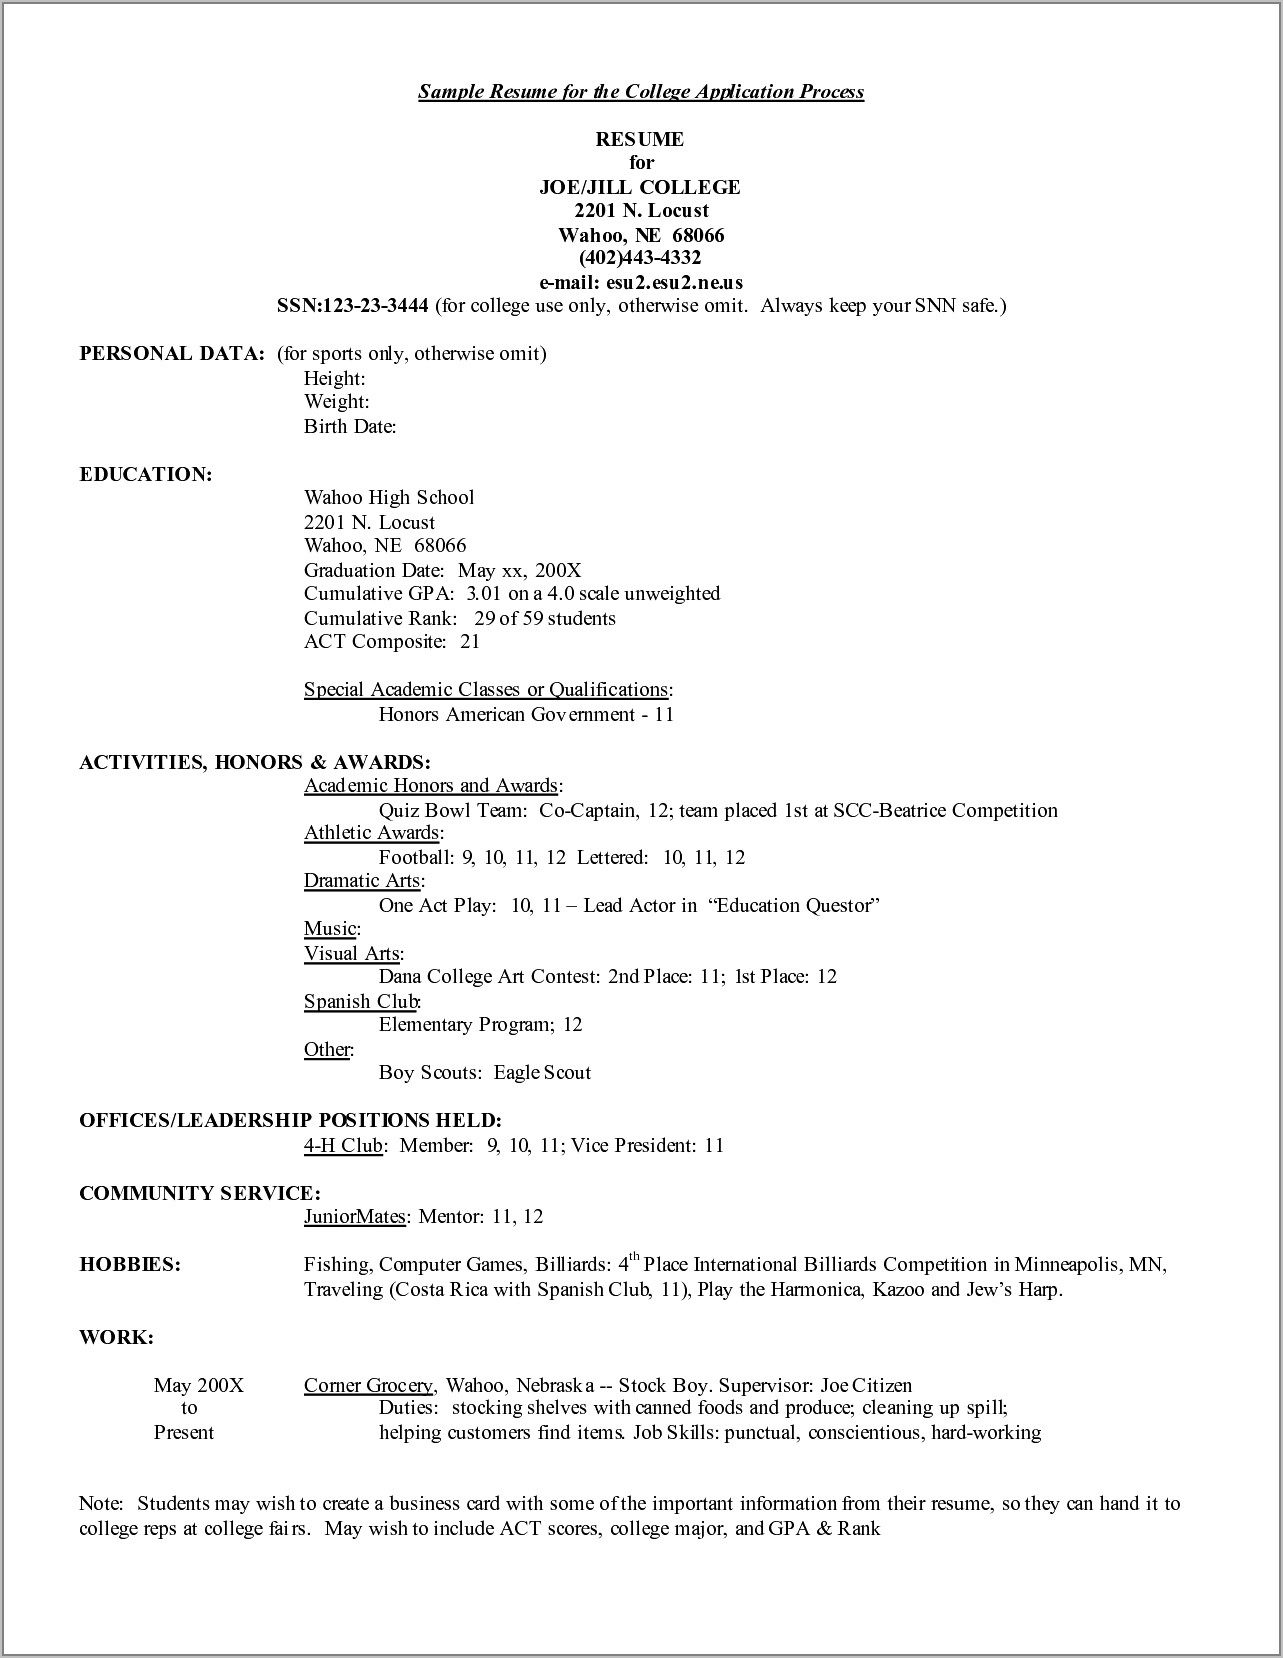 Resume Samples For College Applications